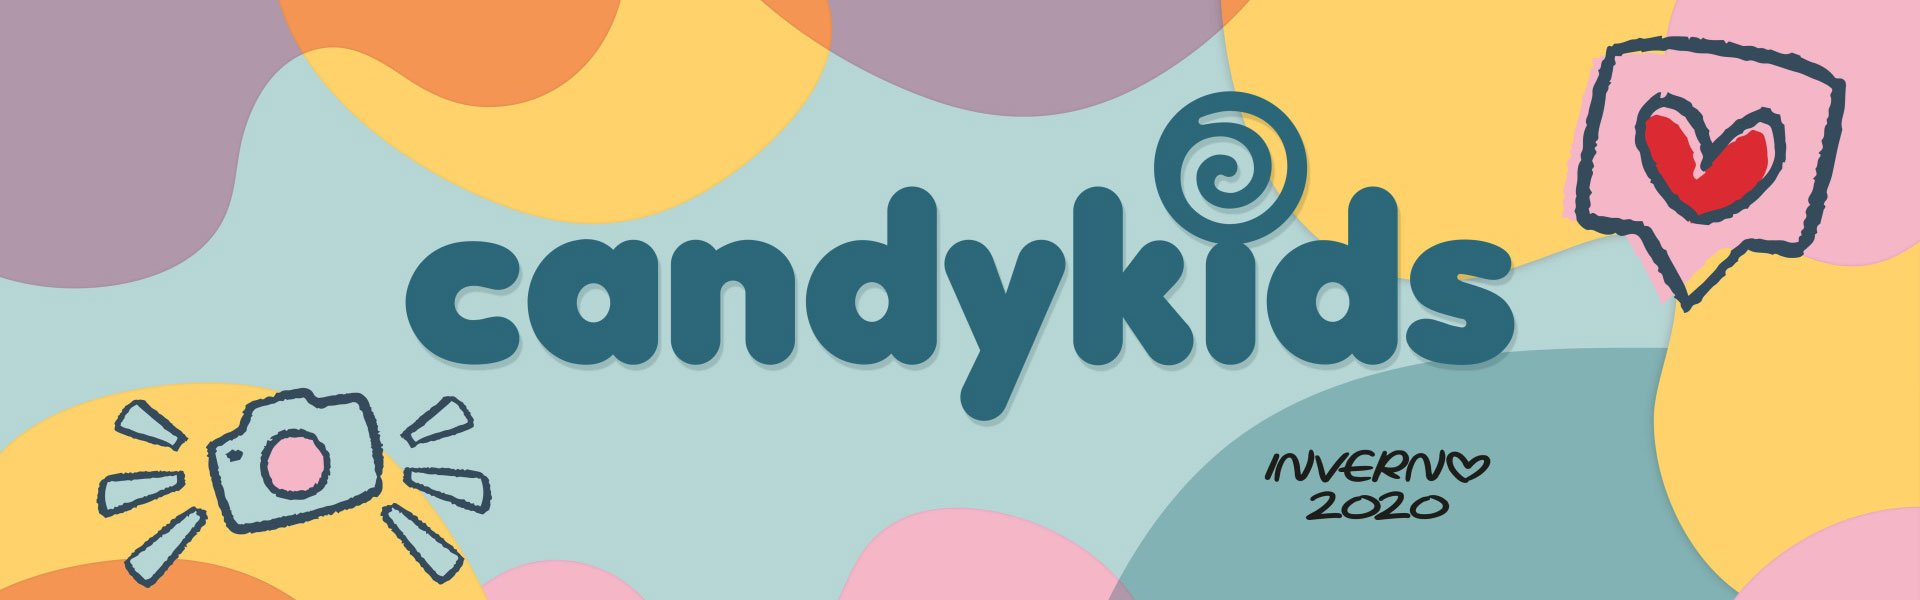 Banner Candy Kids Fashion 1